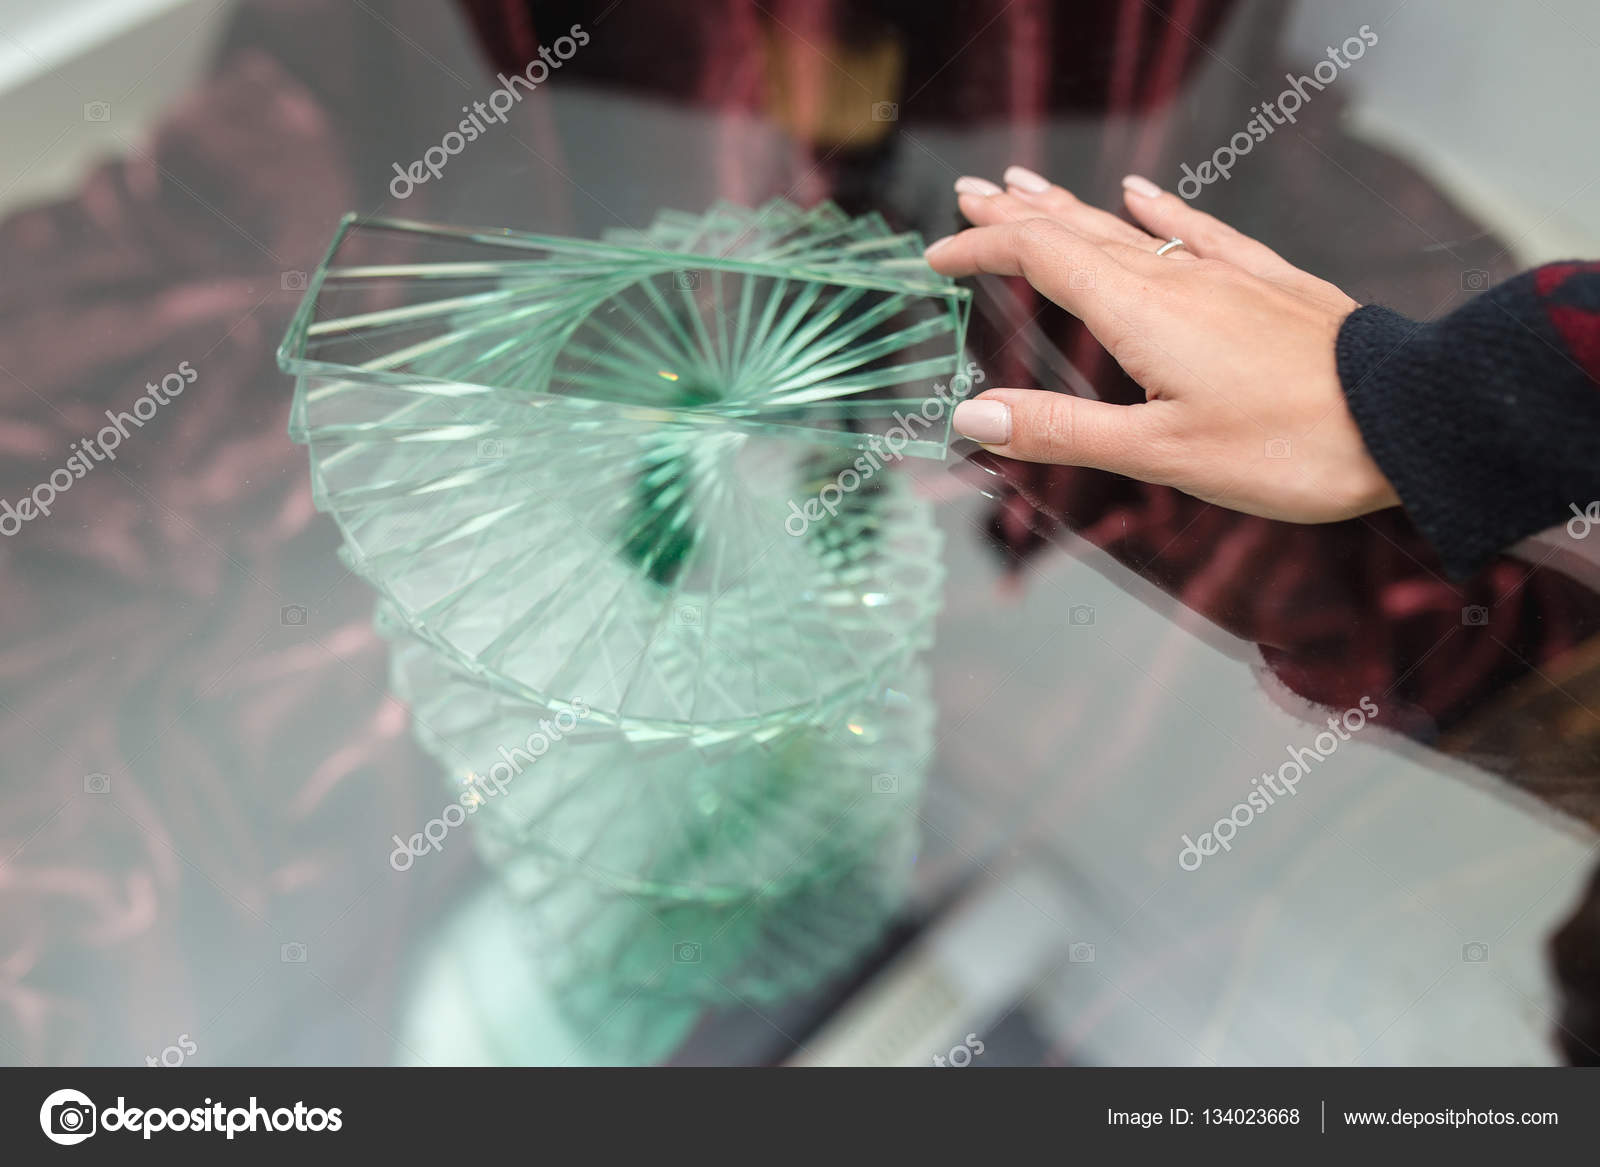 Glastisch Hand Unusua Transparent Glastisch Mit Hand Stockfoto Frantic00